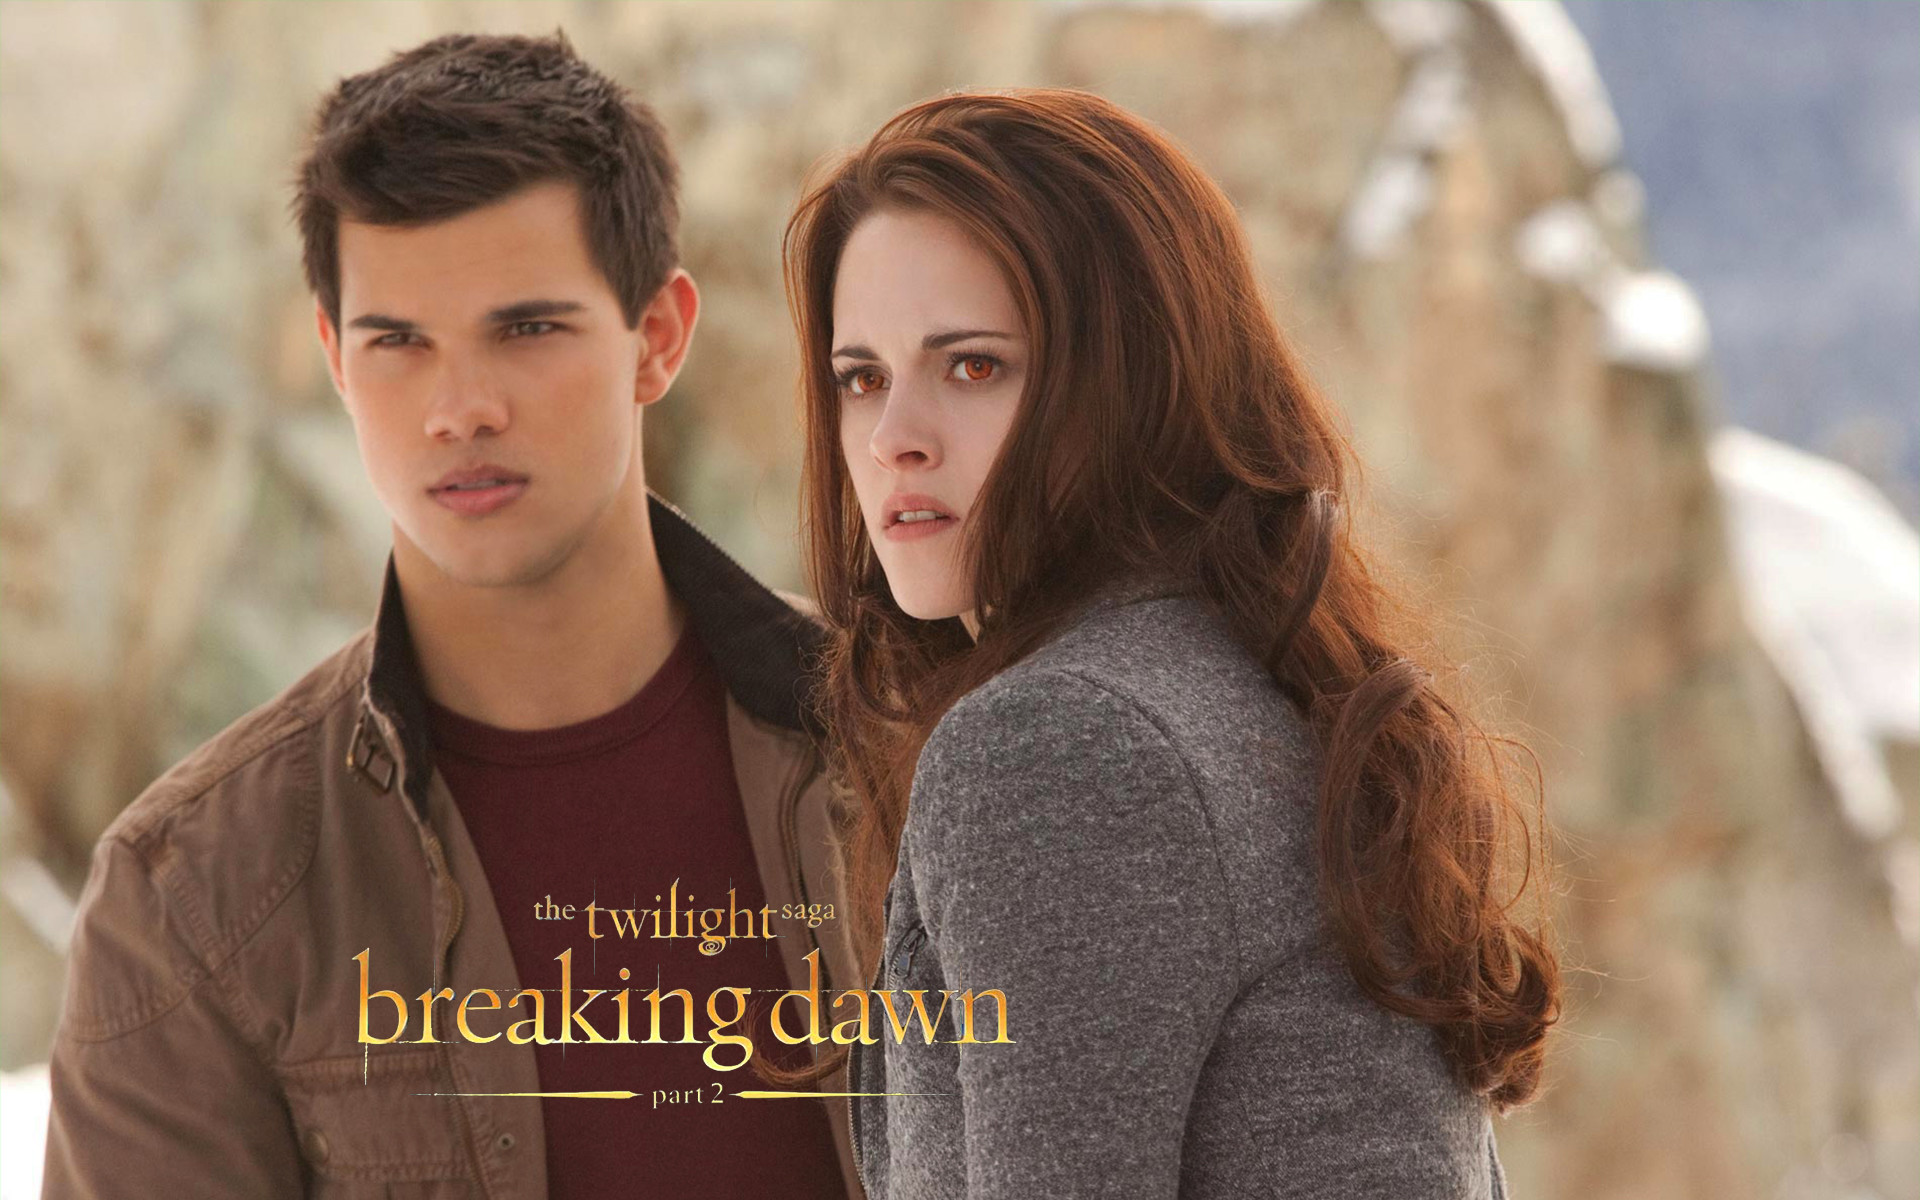 1920x1200 The Twilight Saga Breaking Dawn Part II Images BD 2 Wallpaper HD And Background Photos